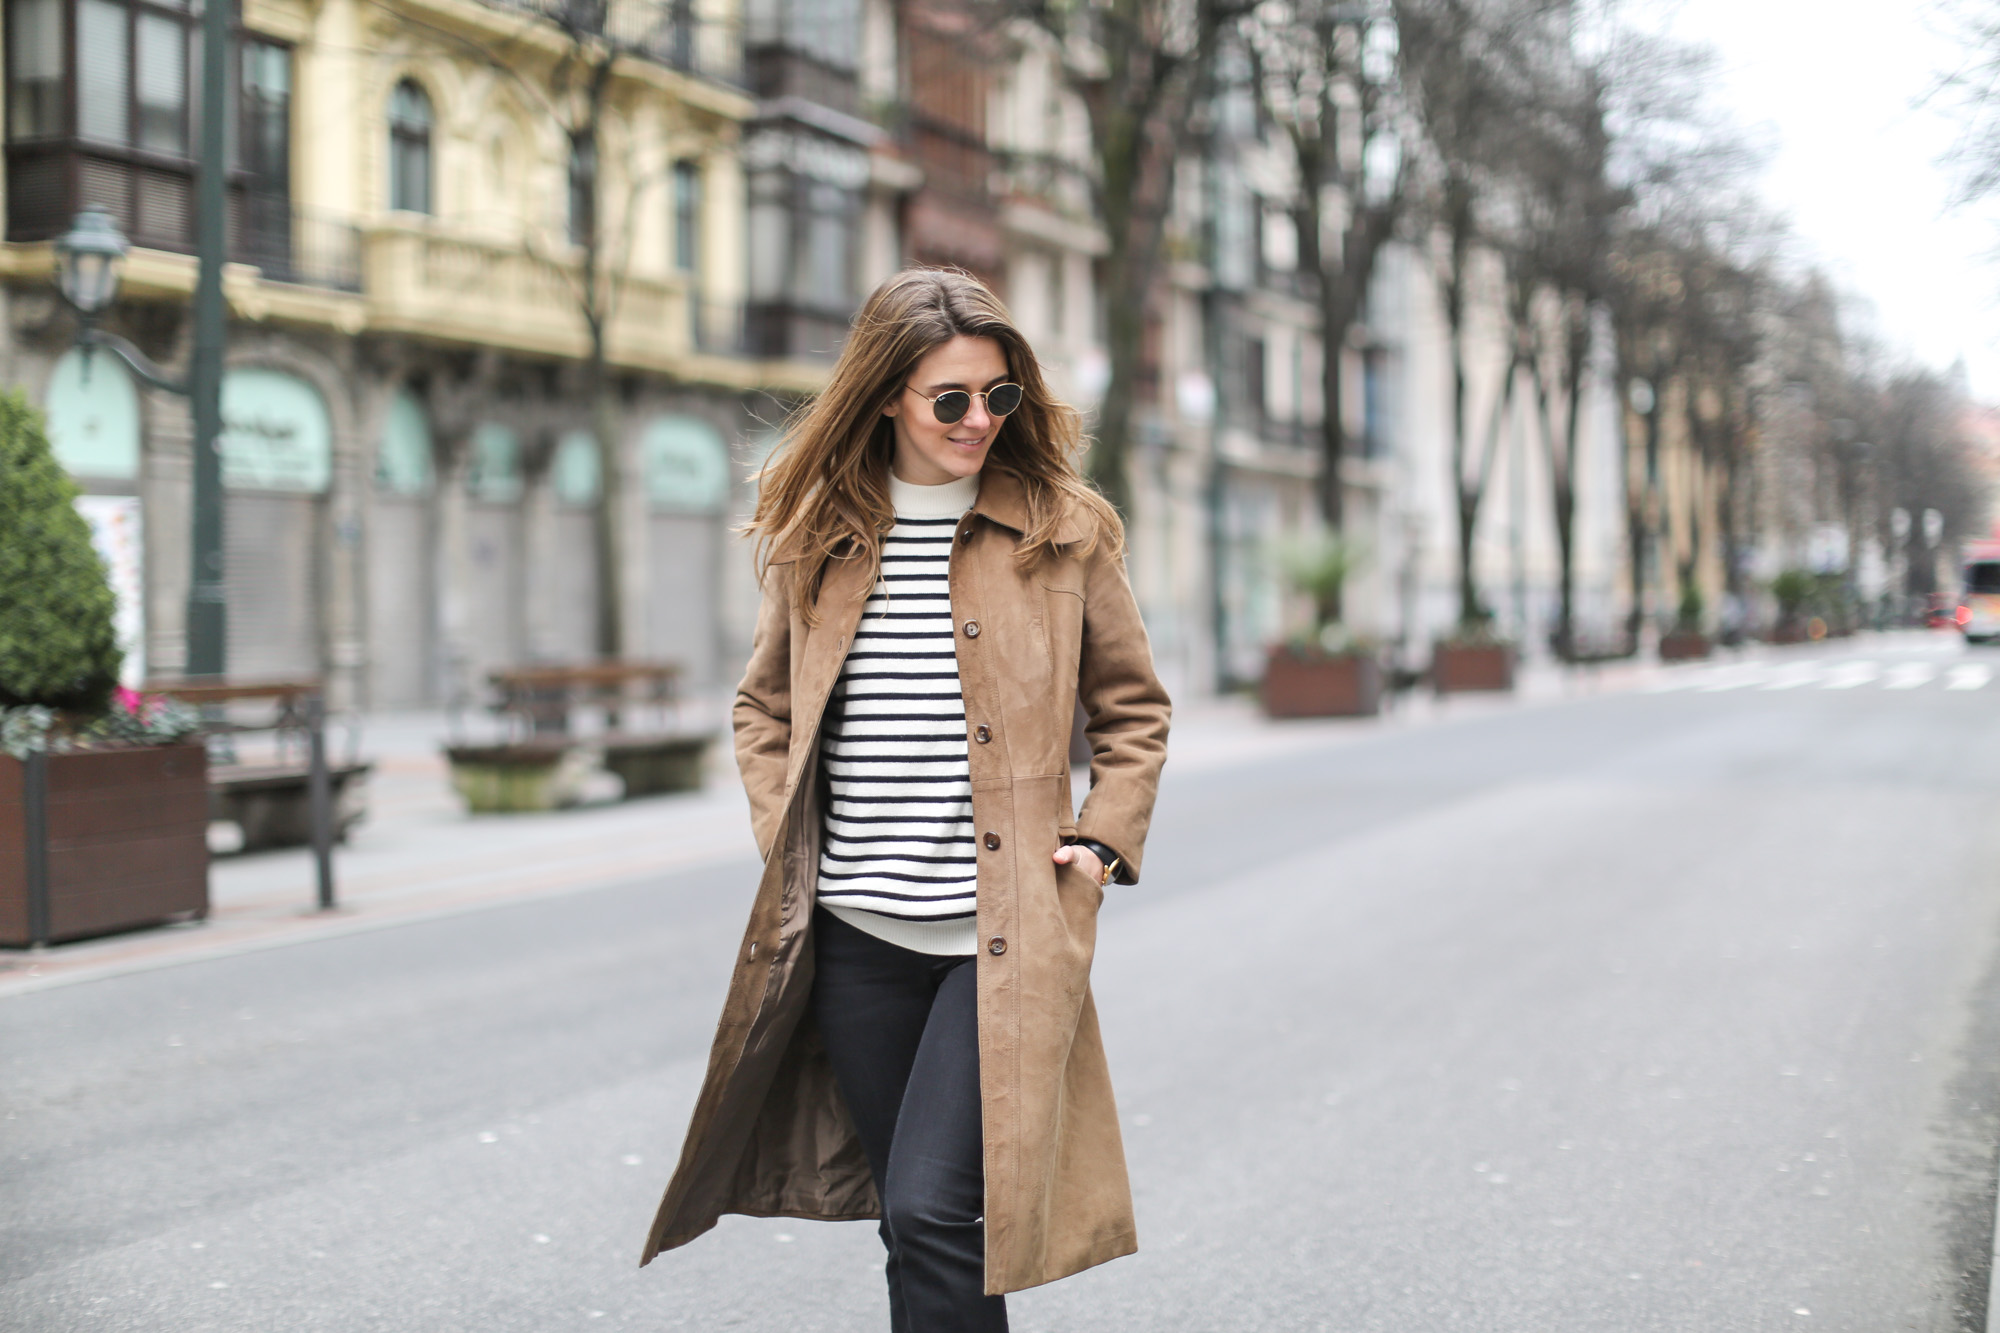 Clochet-streetstyle-black-flared-jeans-suede-vintage-coat-finery-london-bag-11